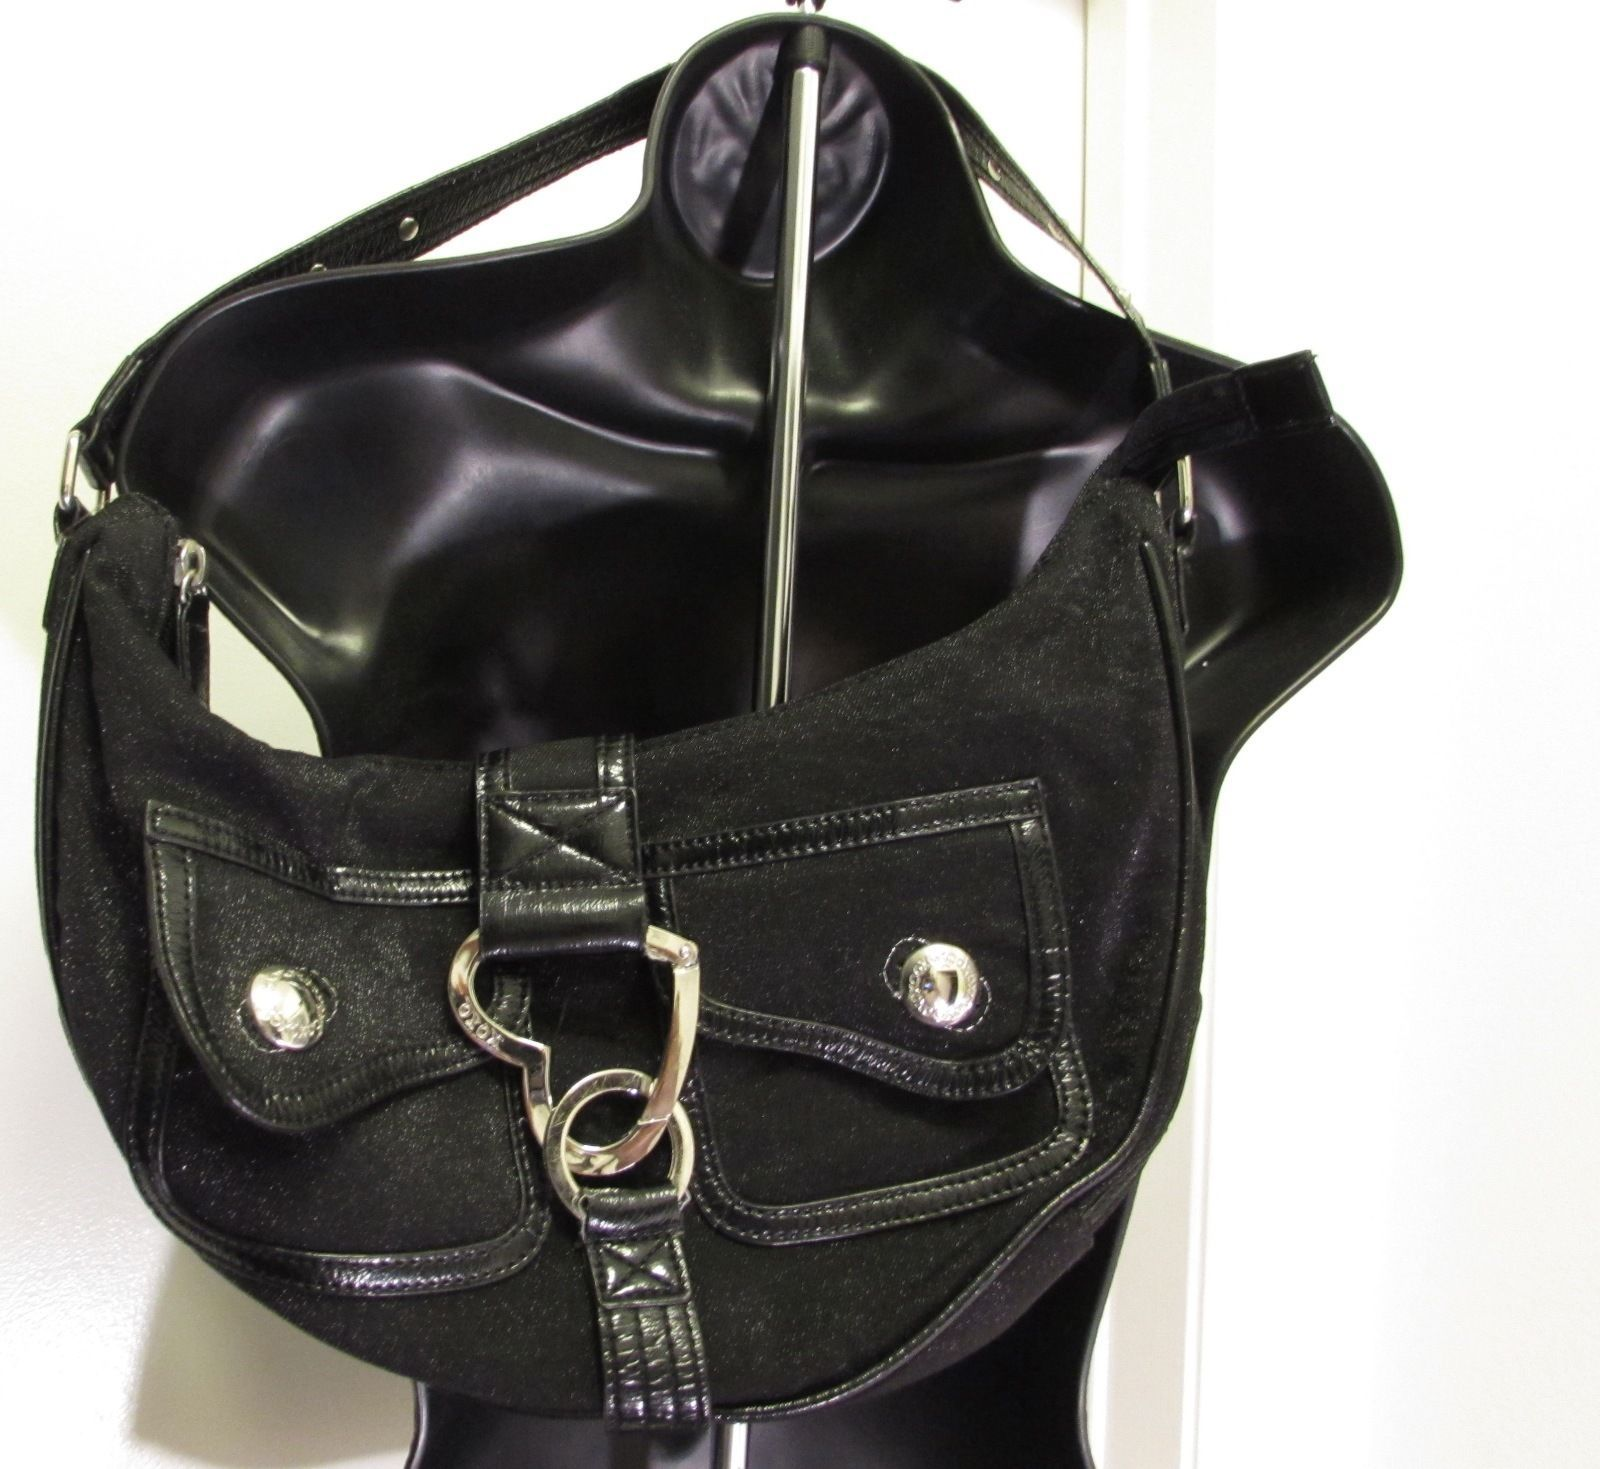 XOXO Accessories Black Shimmer Hobo Handbag with Heart Shaped Logo Closure